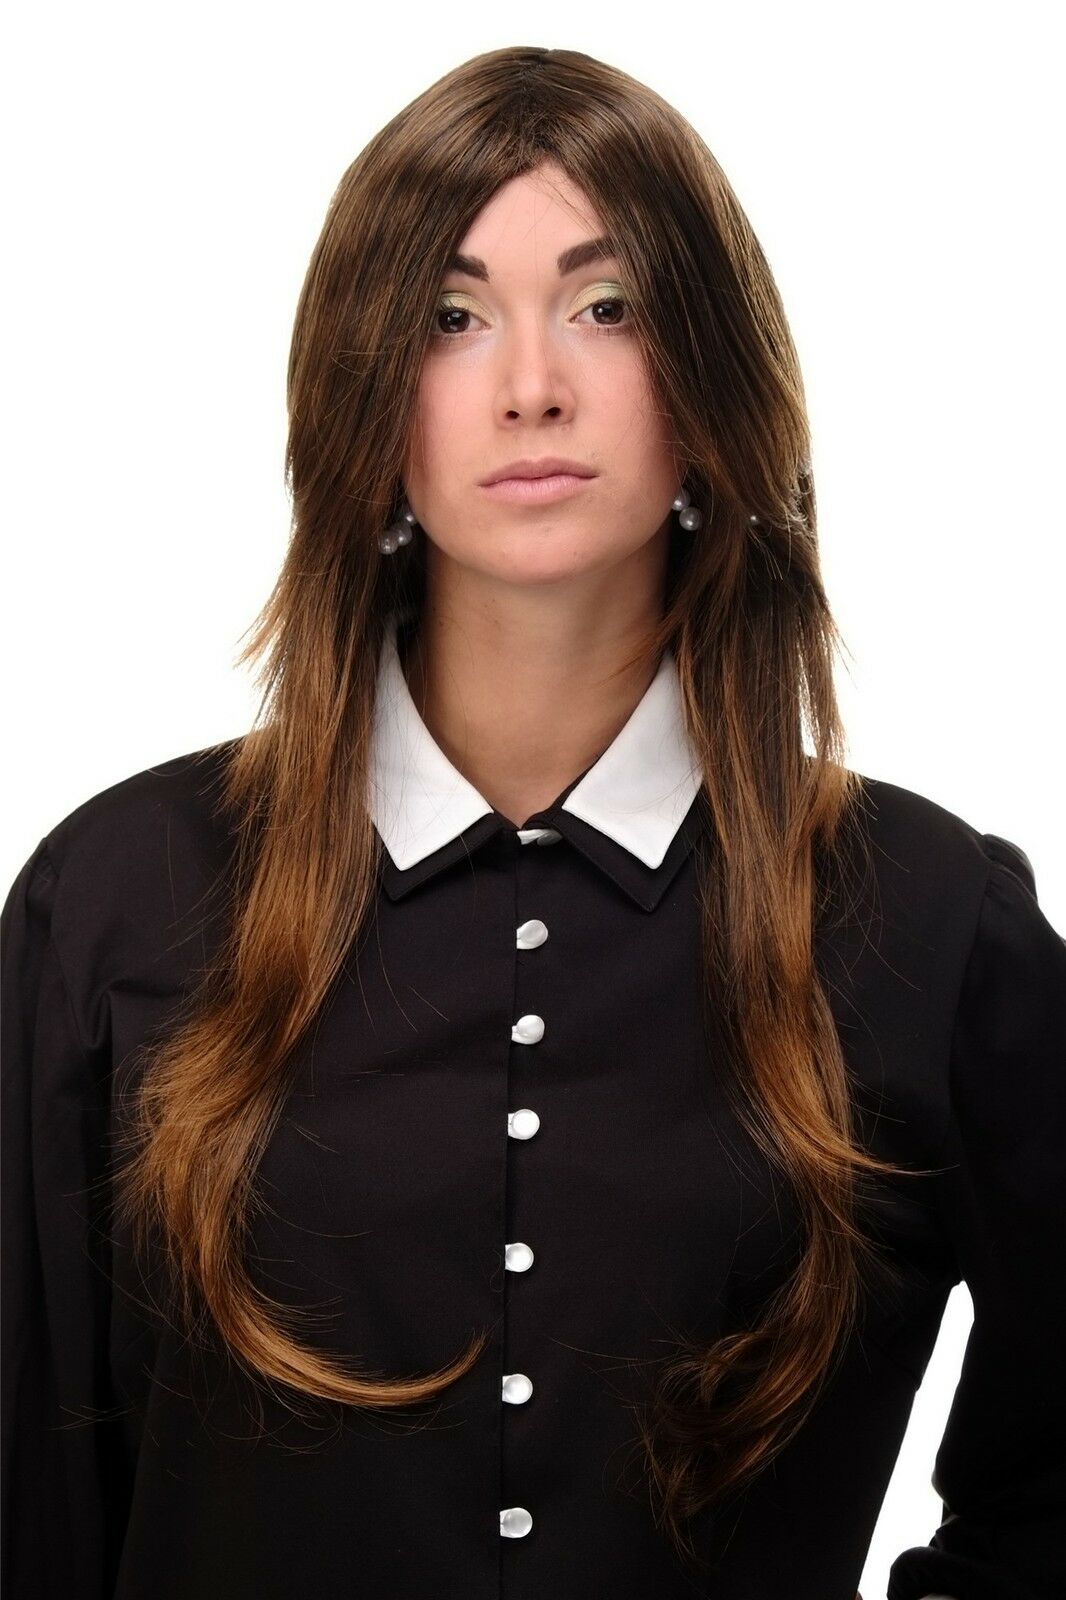 Wig Long Braun Black Kupferbraun Layered Smooth Parting 29 1 2in 3110 2t30